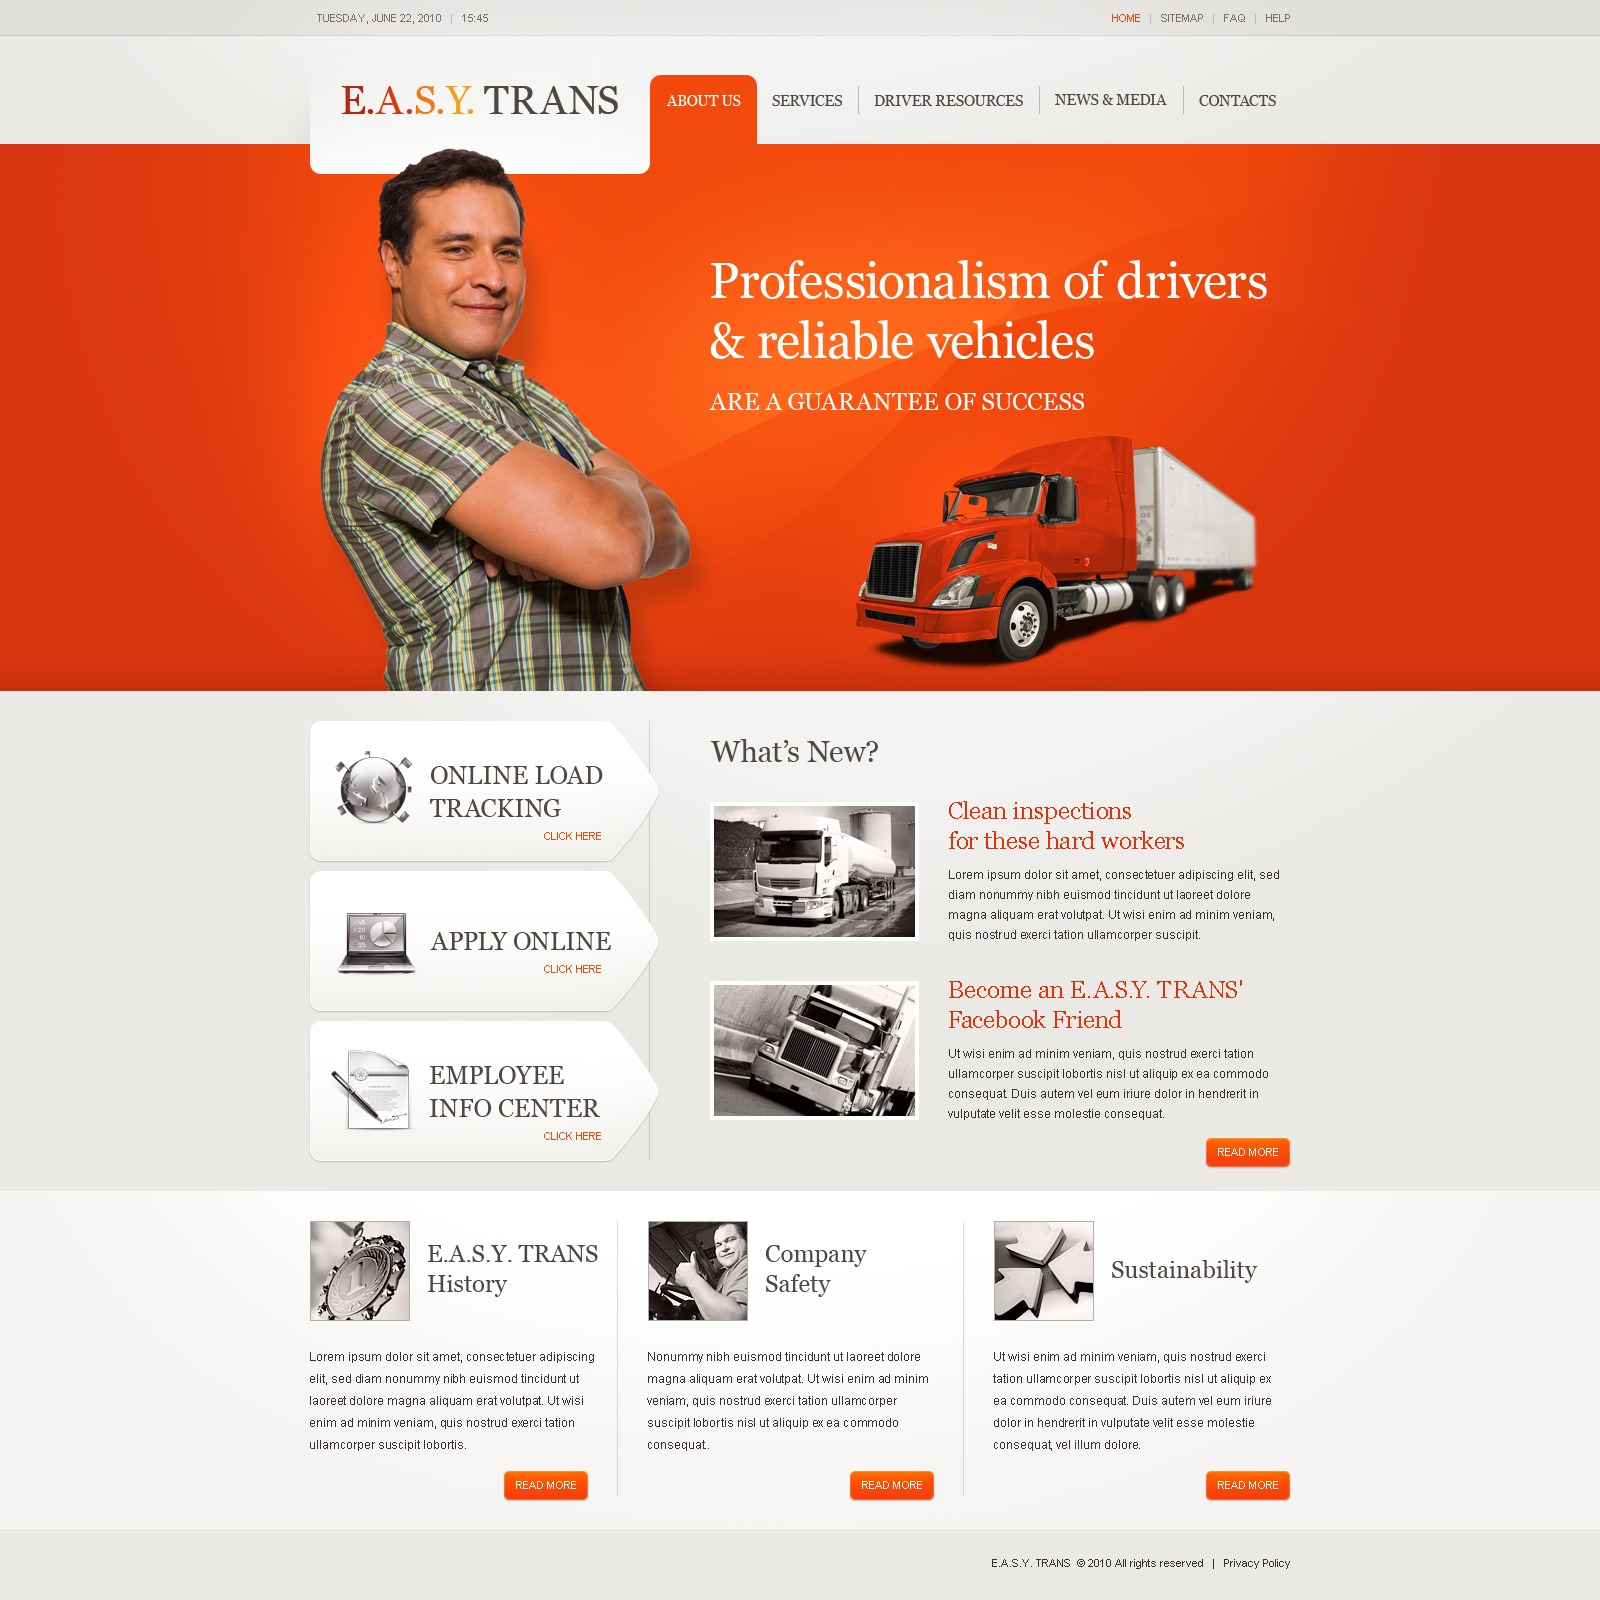 The E A PSD Design 54278, one of the best PSD templates of its kind (transportation, most popular, flash 8, wide), also known as e a PSD template, s PSD template, y PSD template, trans PSD template, transportation company PSD template, transport PSD template, fast PSD template, reliability PSD template, safety PSD template, express PSD template, exportation PSD template, trucking PSD template, work PSD template, team PSD template, profile PSD template, support PSD template, customer PSD template, clients solutions PSD template, cars PSD template, cargo PSD template, services PSD template, shipment PSD template, rates PSD template, prices PSD template, offer PSD template, standards PSD template, vehicle PSD template, destination PSD template, trucking PSD template, sea PSD template, air PSD template, help and related with e a, s, y, trans, transportation company, transport, fast, reliability, safety, express, exportation, trucking, work, team, profile, support, customer, clients solutions, cars, cargo, services, shipment, rates, prices, offer, standards, vehicle, destination, trucking, sea, air, help, etc.